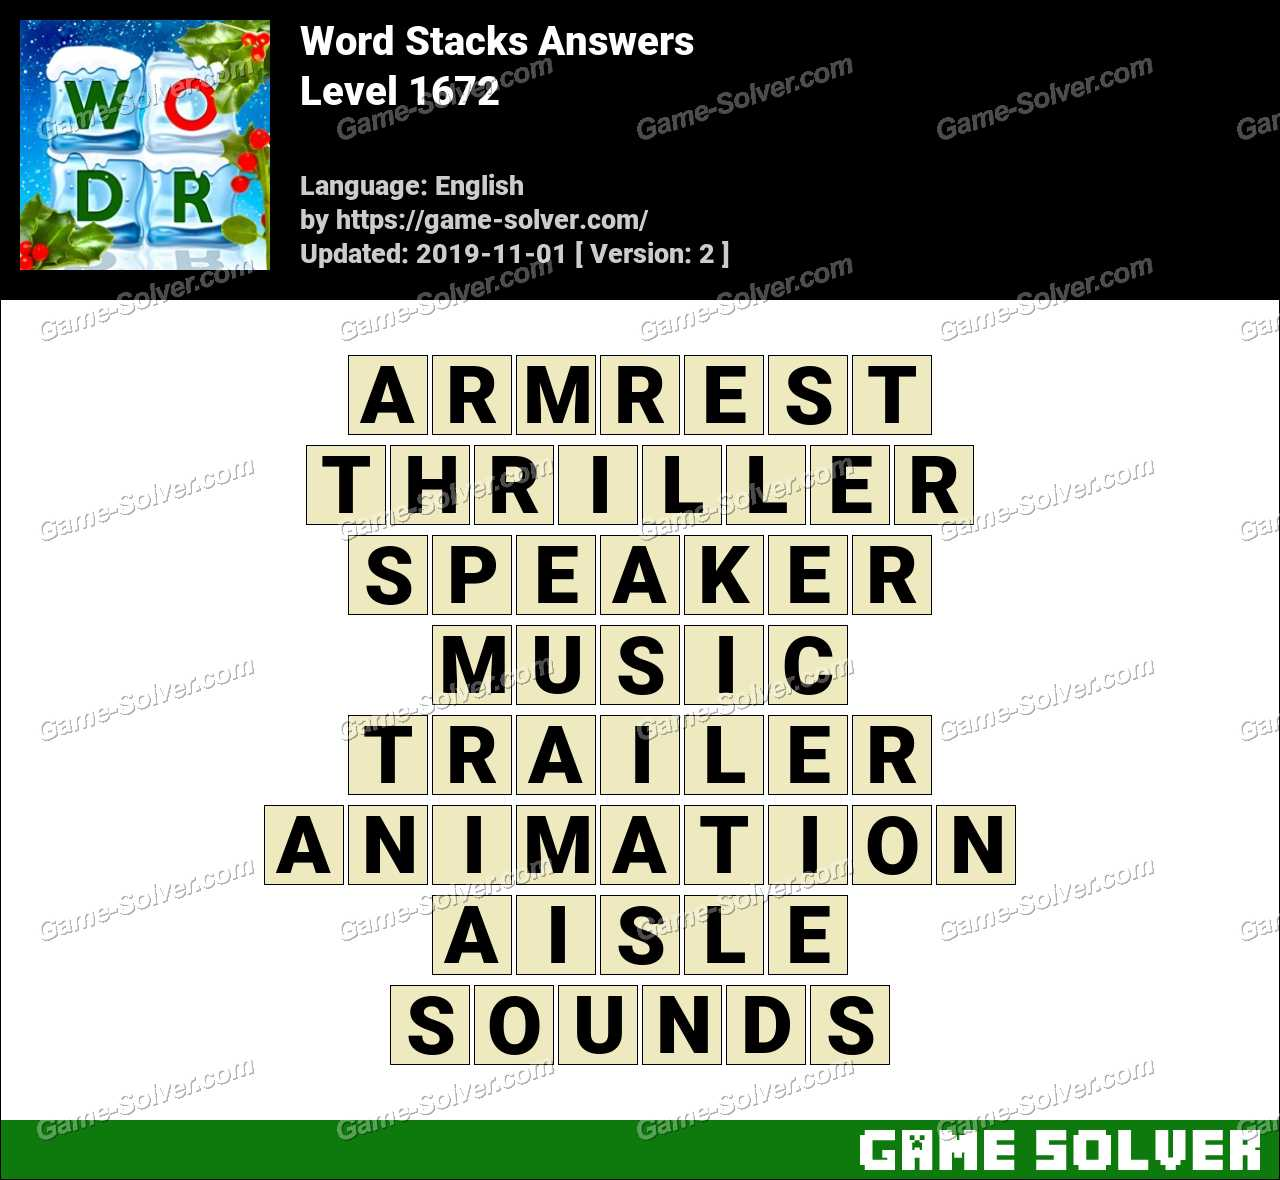 Word Stacks Level 1672 Answers